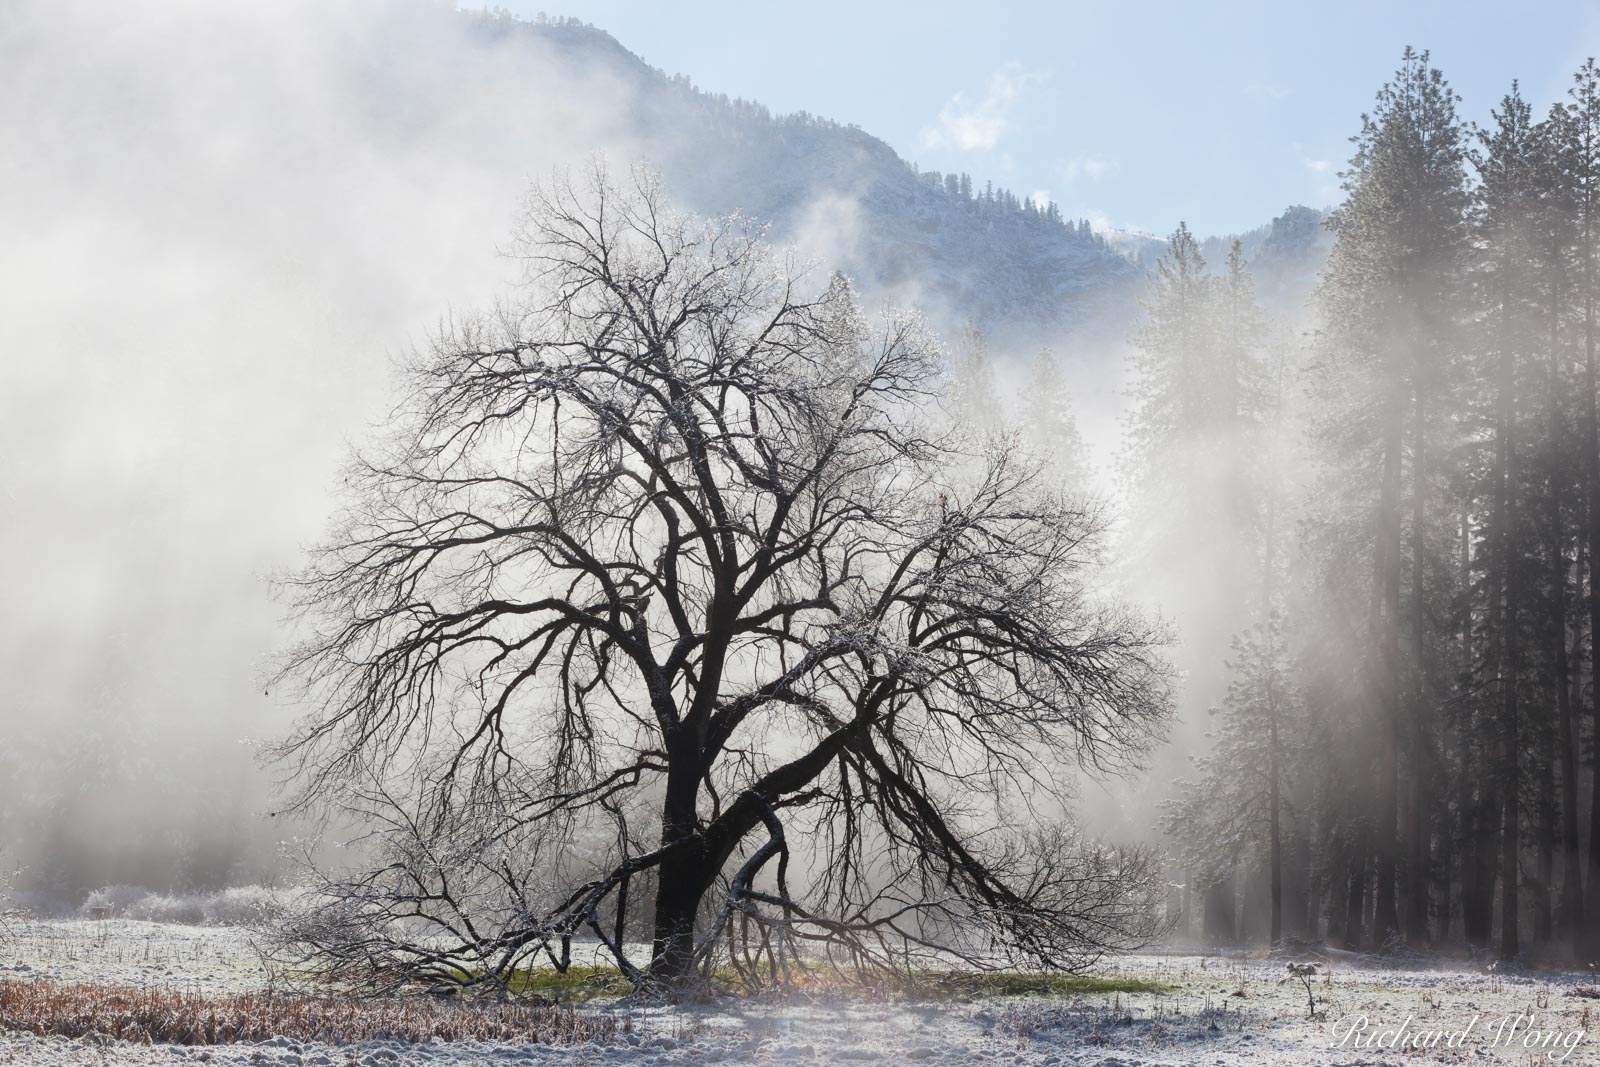 Elm Tree After Spring Snowstorm, Yosemite National Park, California, photo, photo